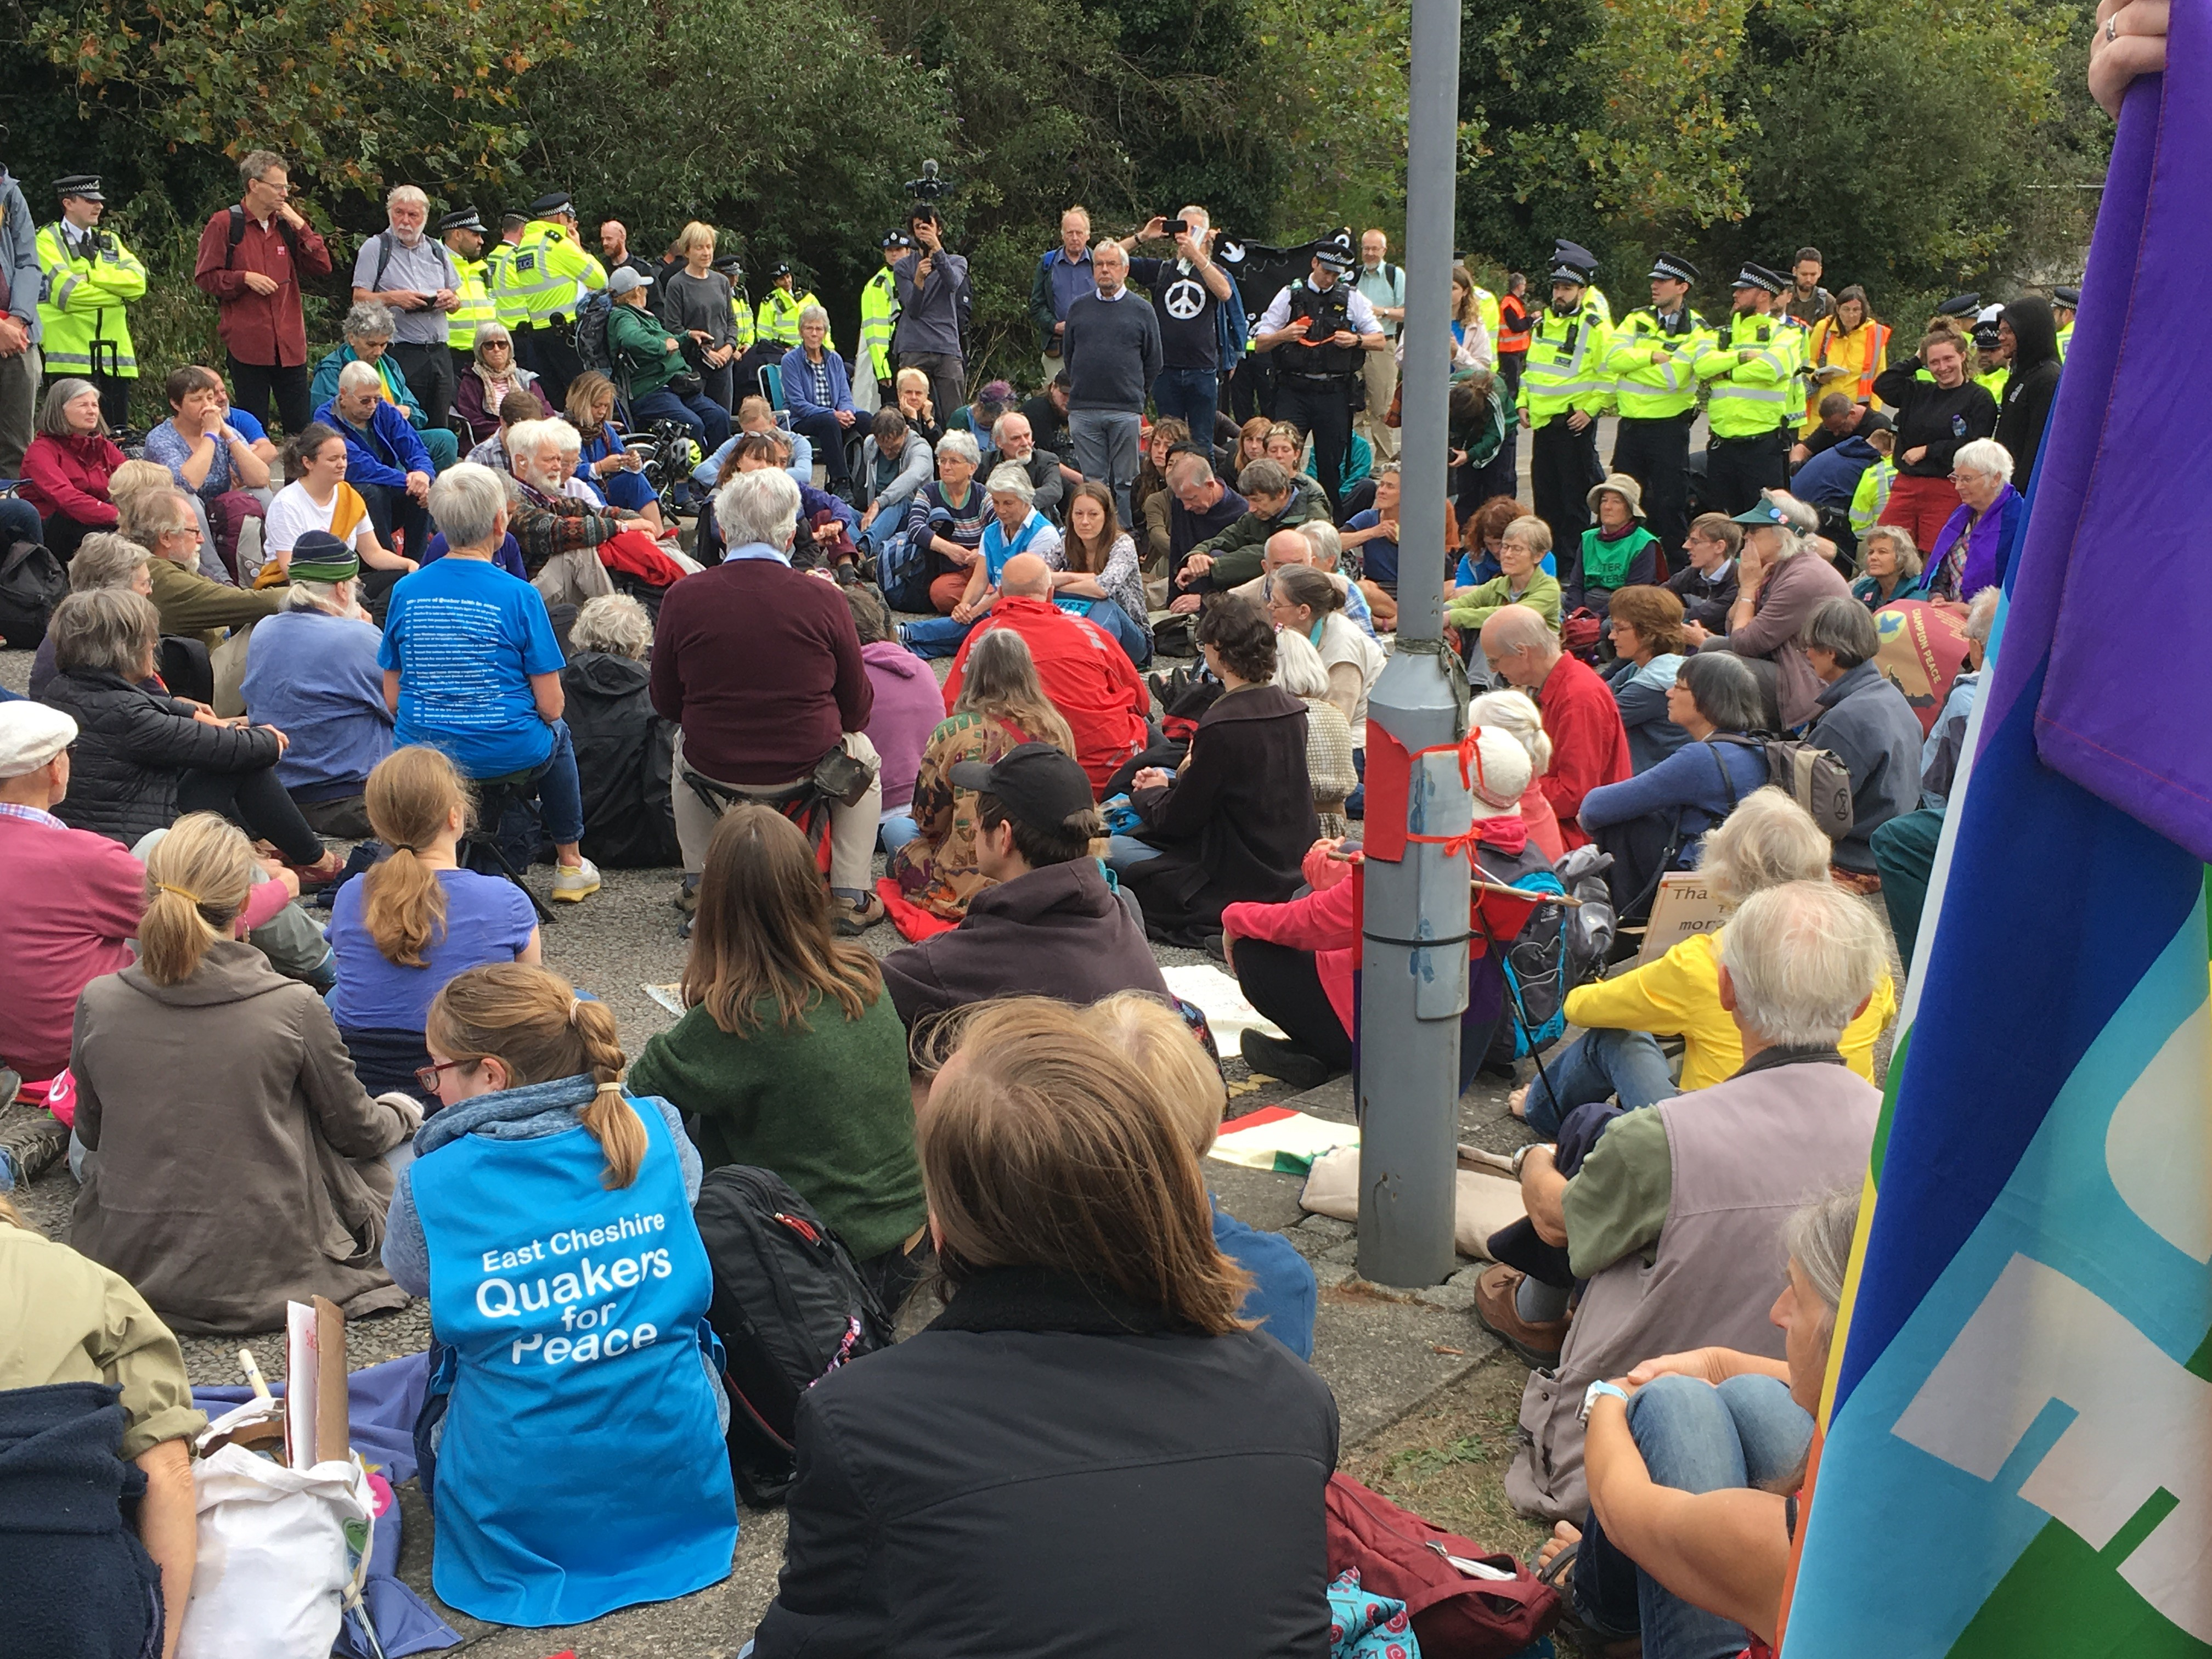 Meeting for Worship at the Arms Fair Protest 2019